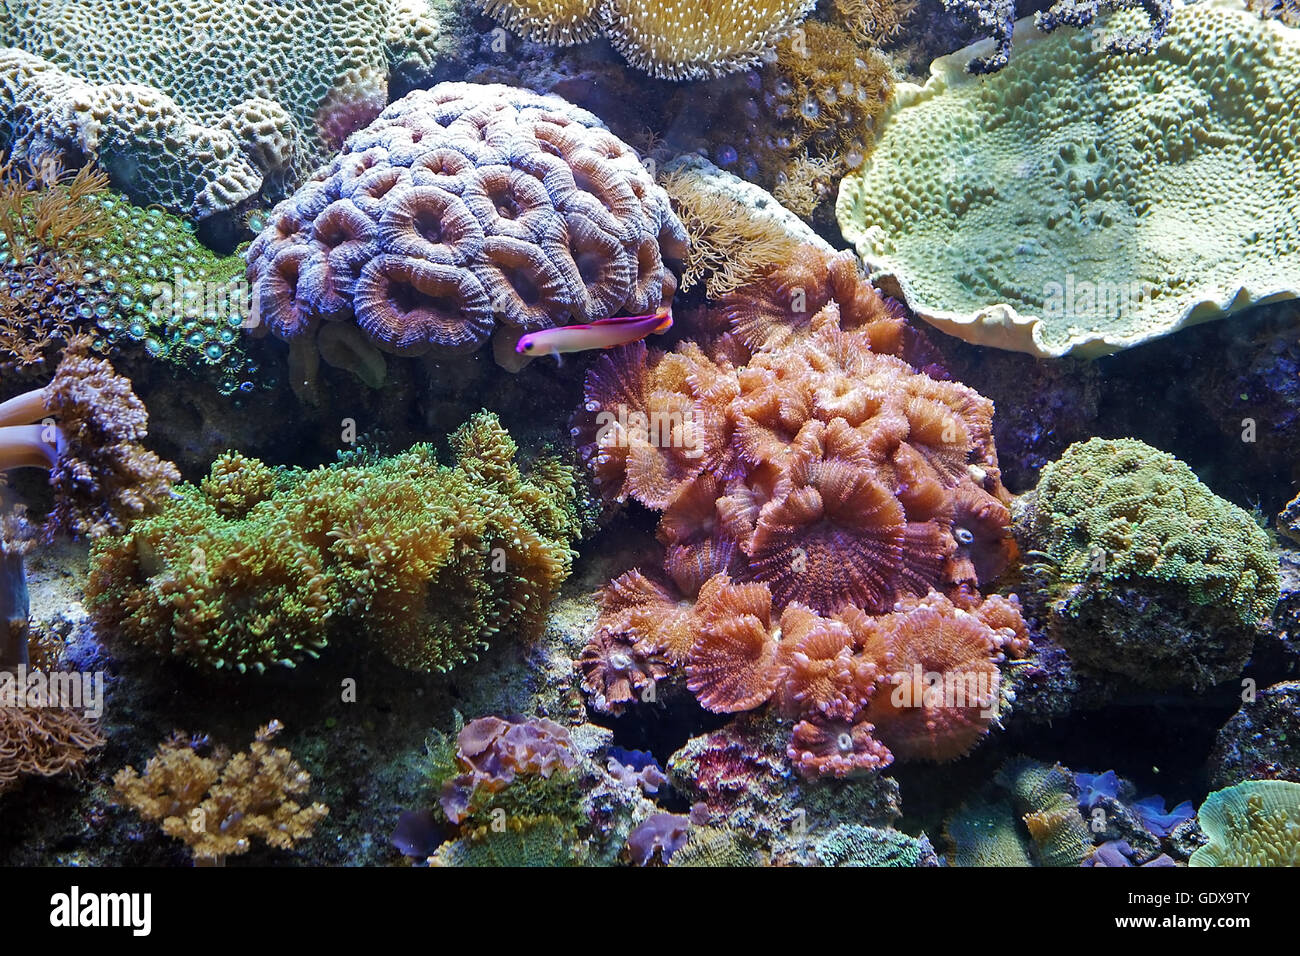 Beautiful photograph of colorful coral reef and algae for Underwater pond plants